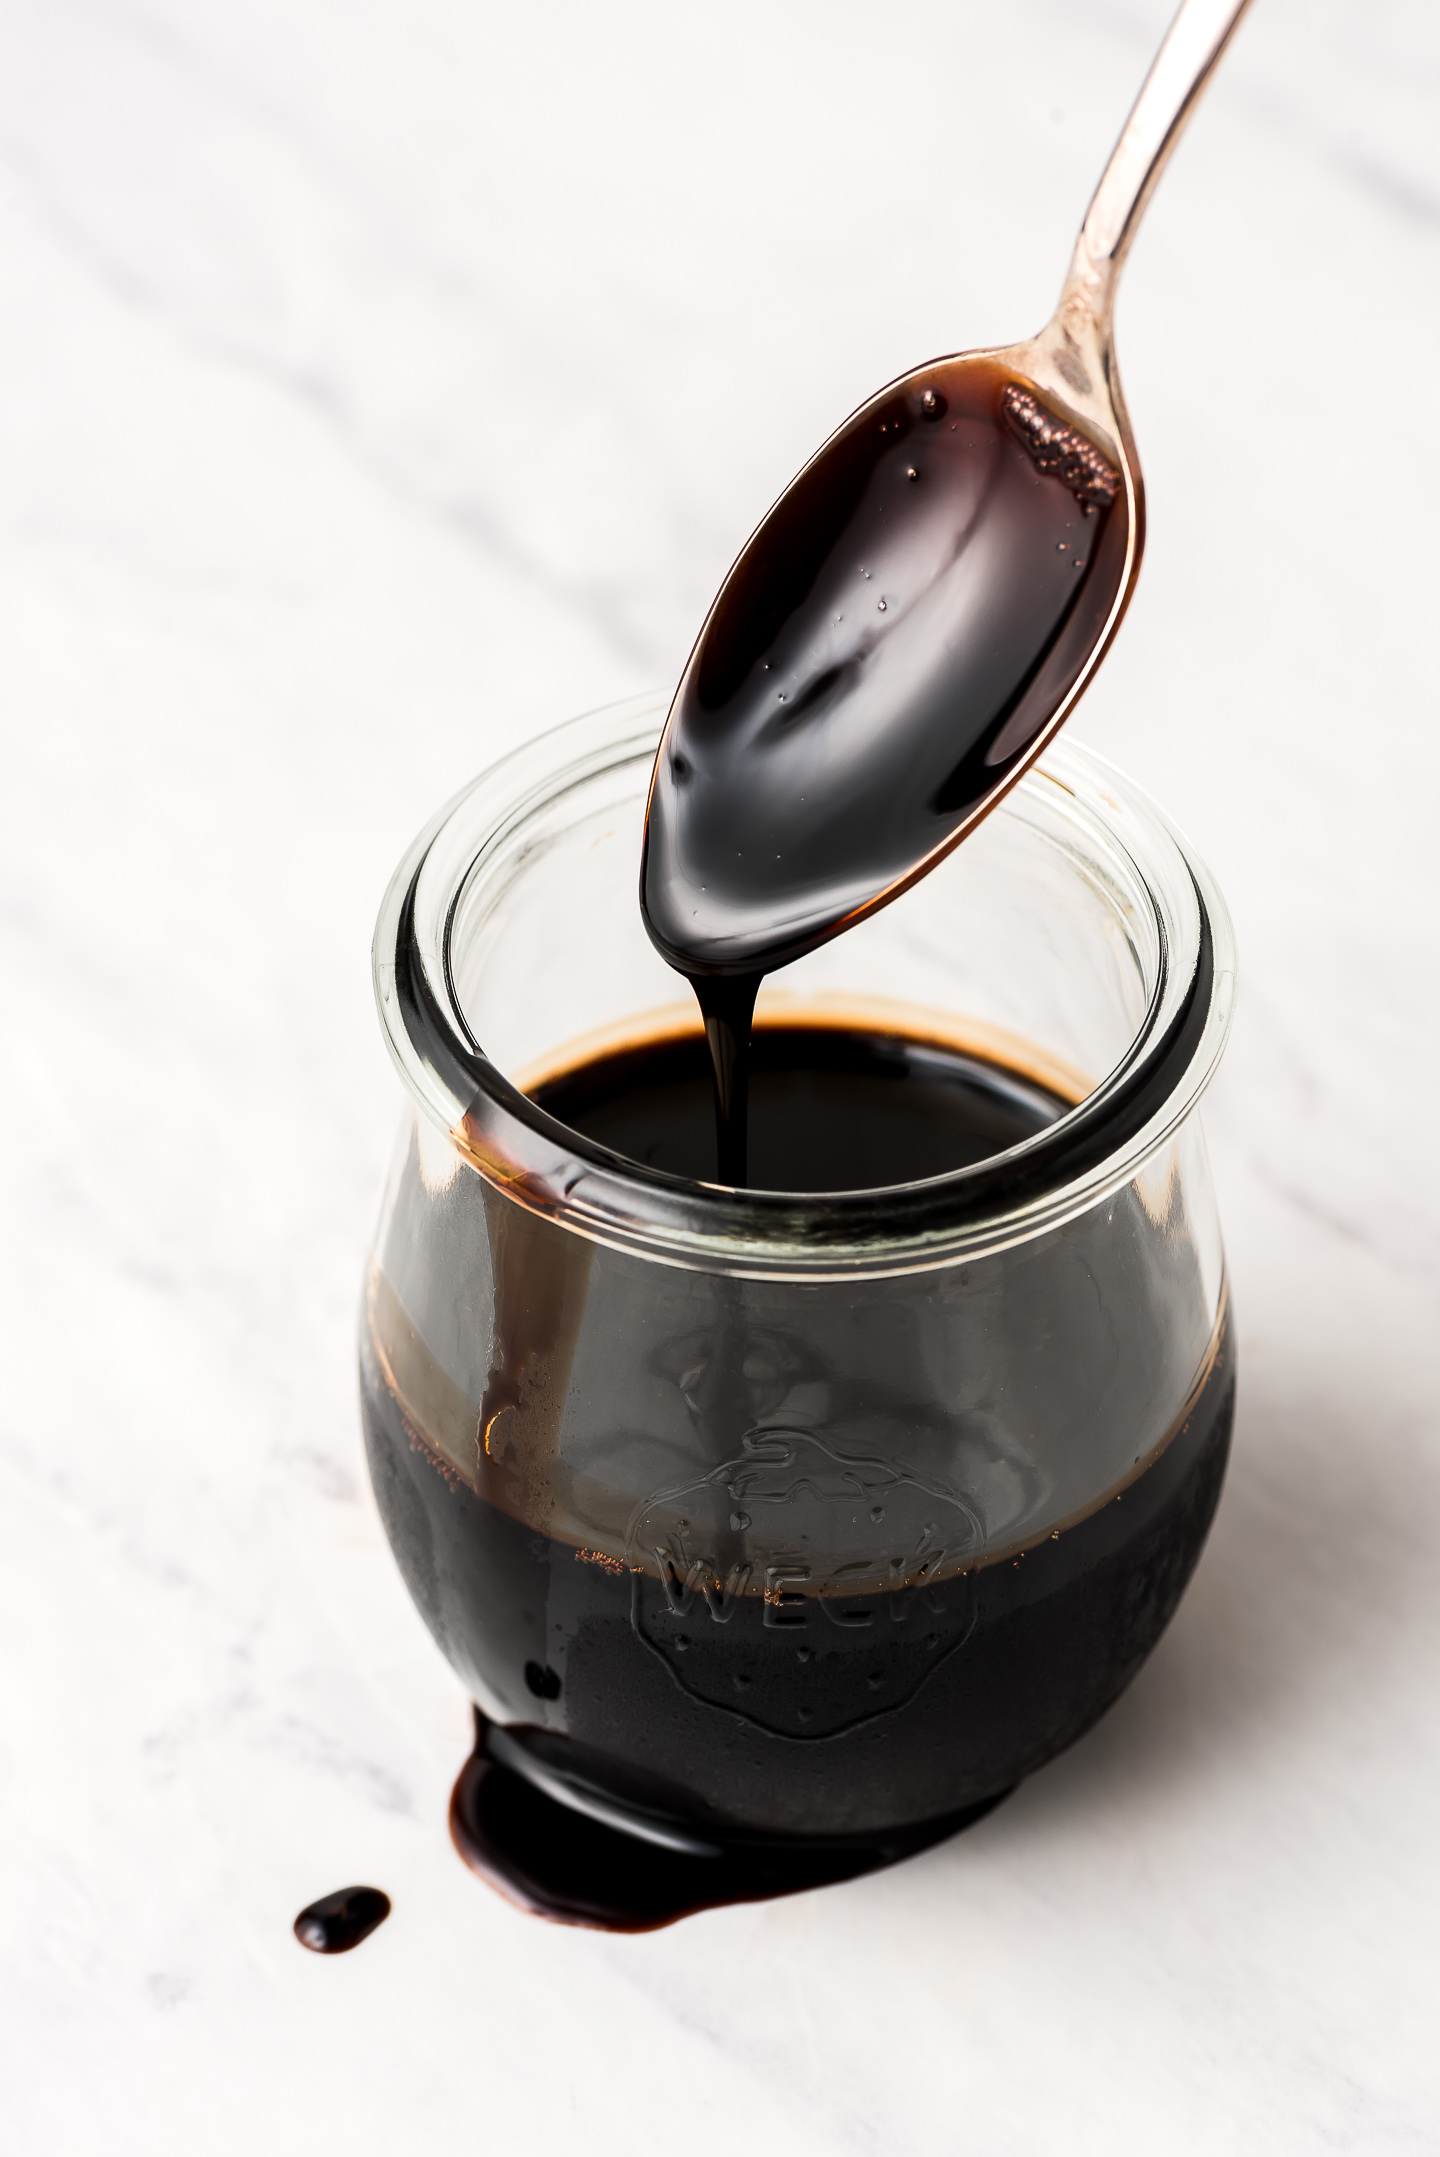 Lifting a spoon coated with Balsamic Glaze out of a Weck jar.